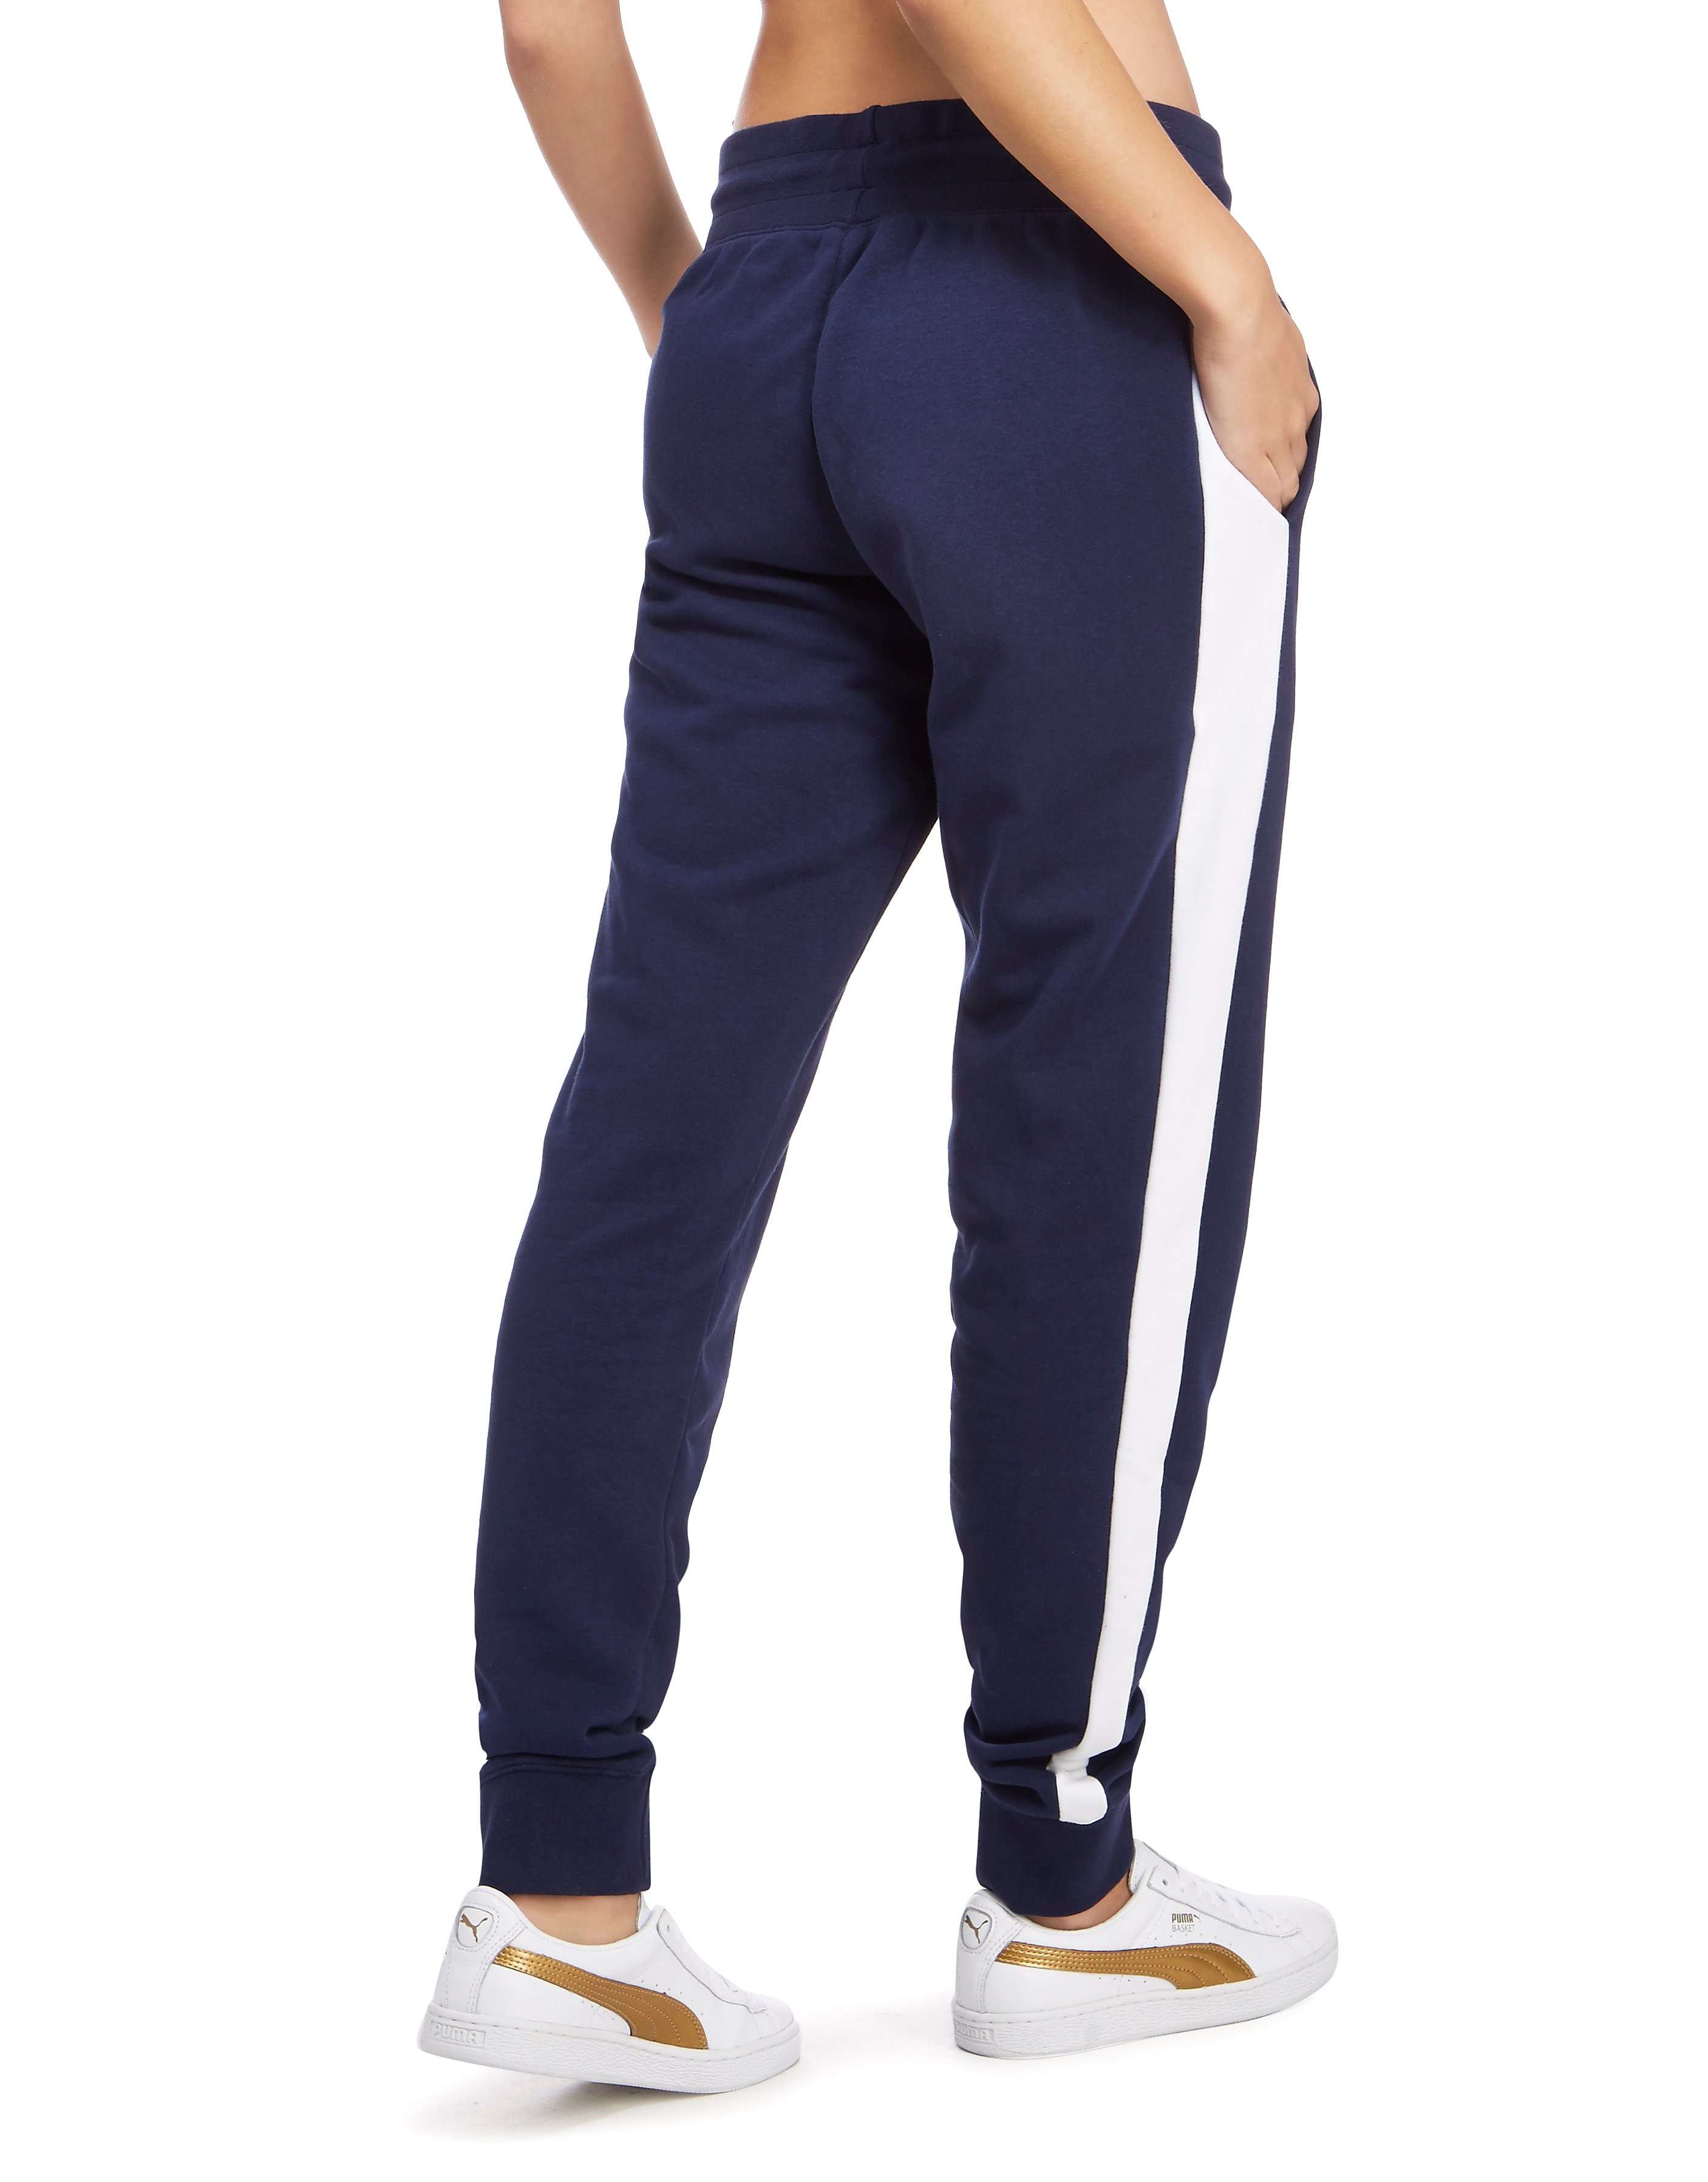 PUMA T7 Fleece Pants